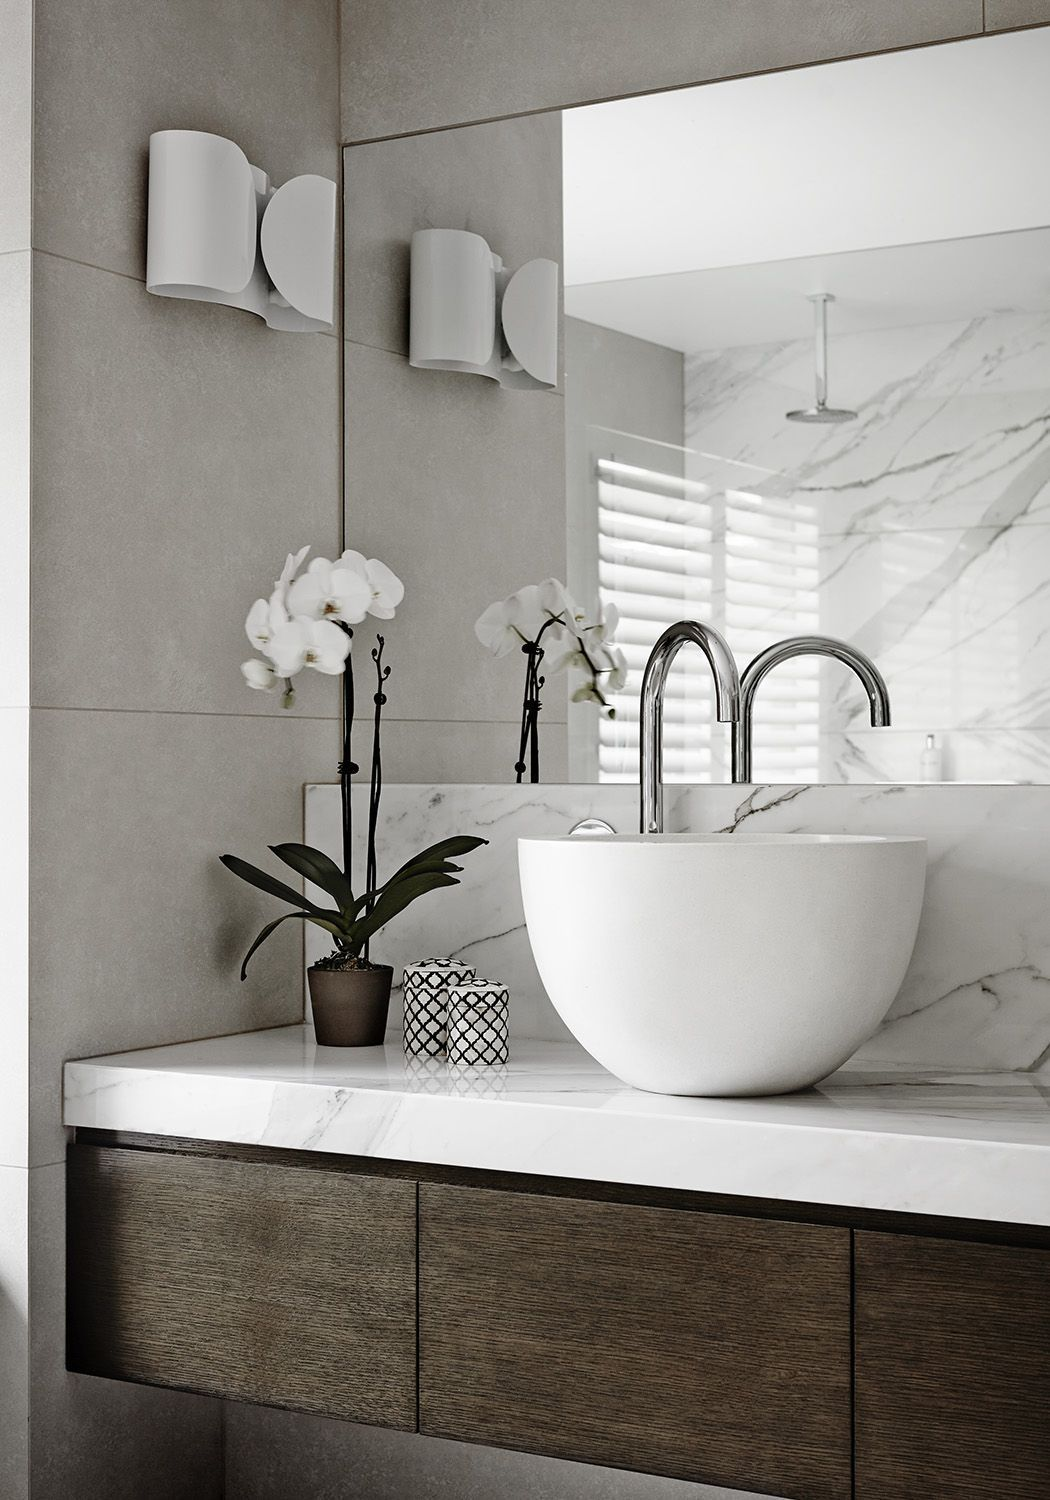 Choose the Latest Modern Sink Collection of the Highest Quality for Your Homes Main Bathroom